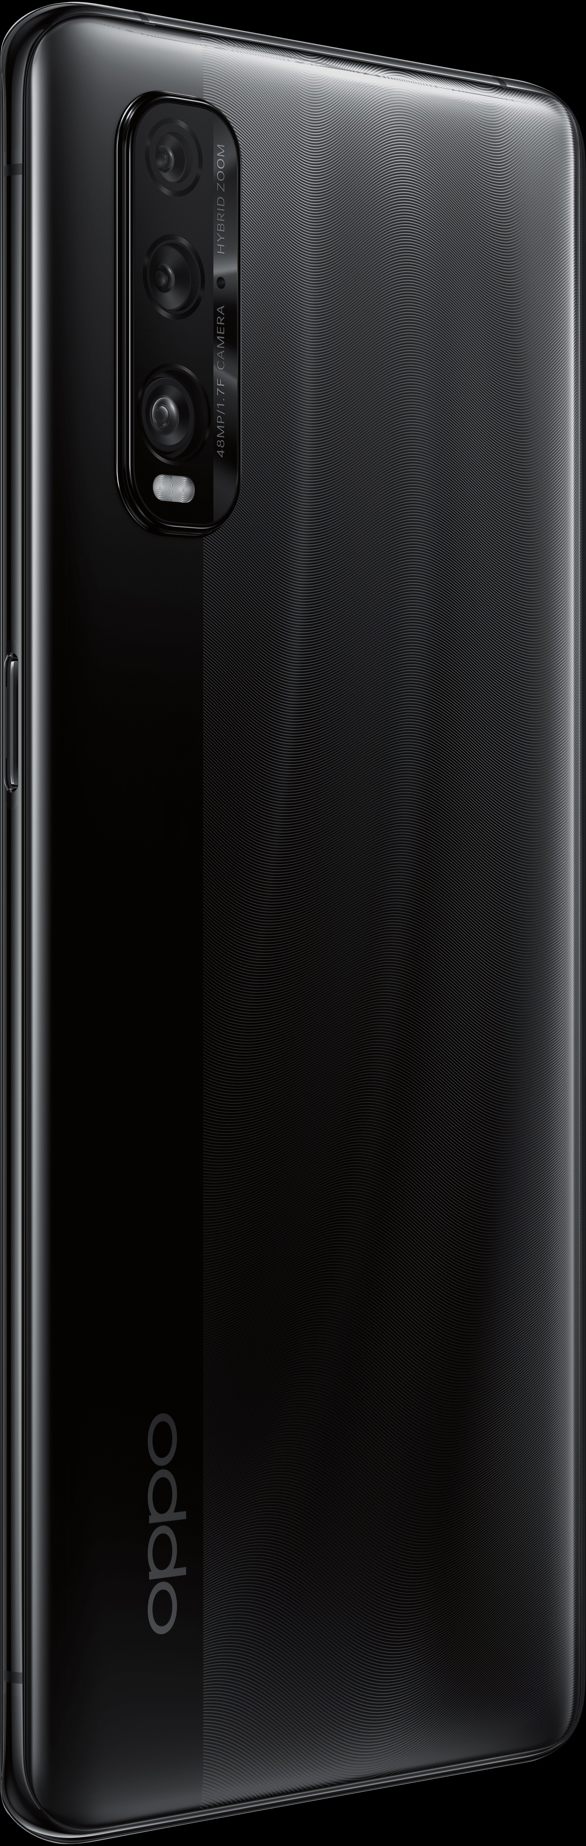 OPPO FIND X2 Black Ceramic